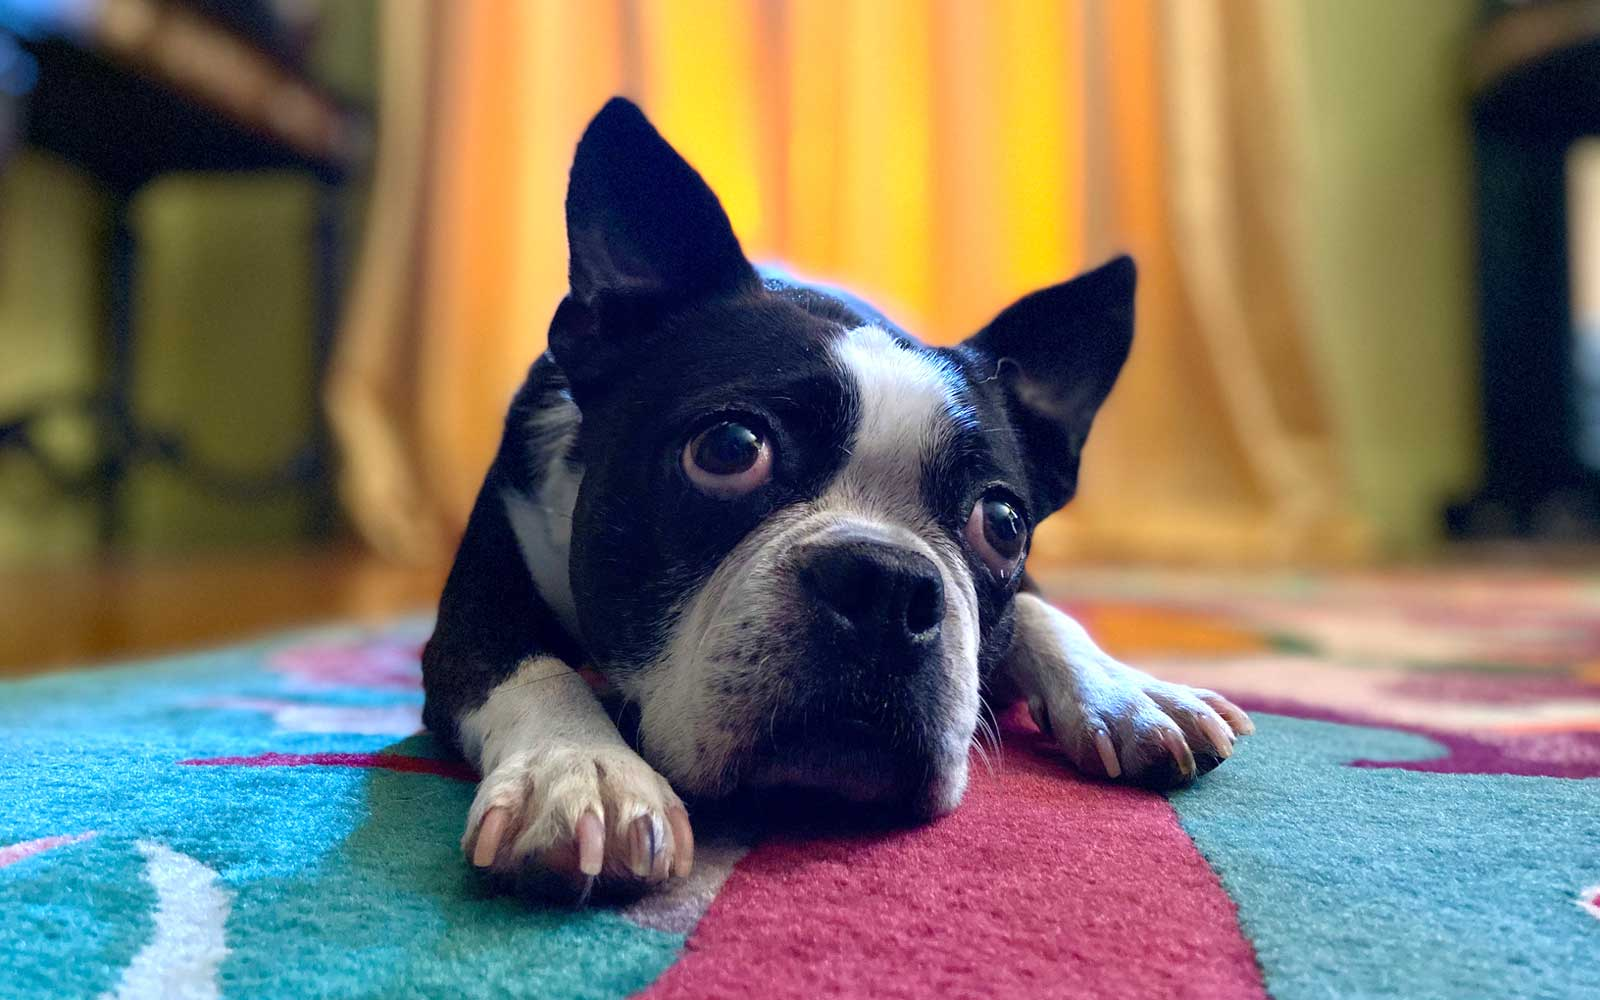 The New iPhone 11 Has Pet Portrait Mode, the One Feature We All Wished For